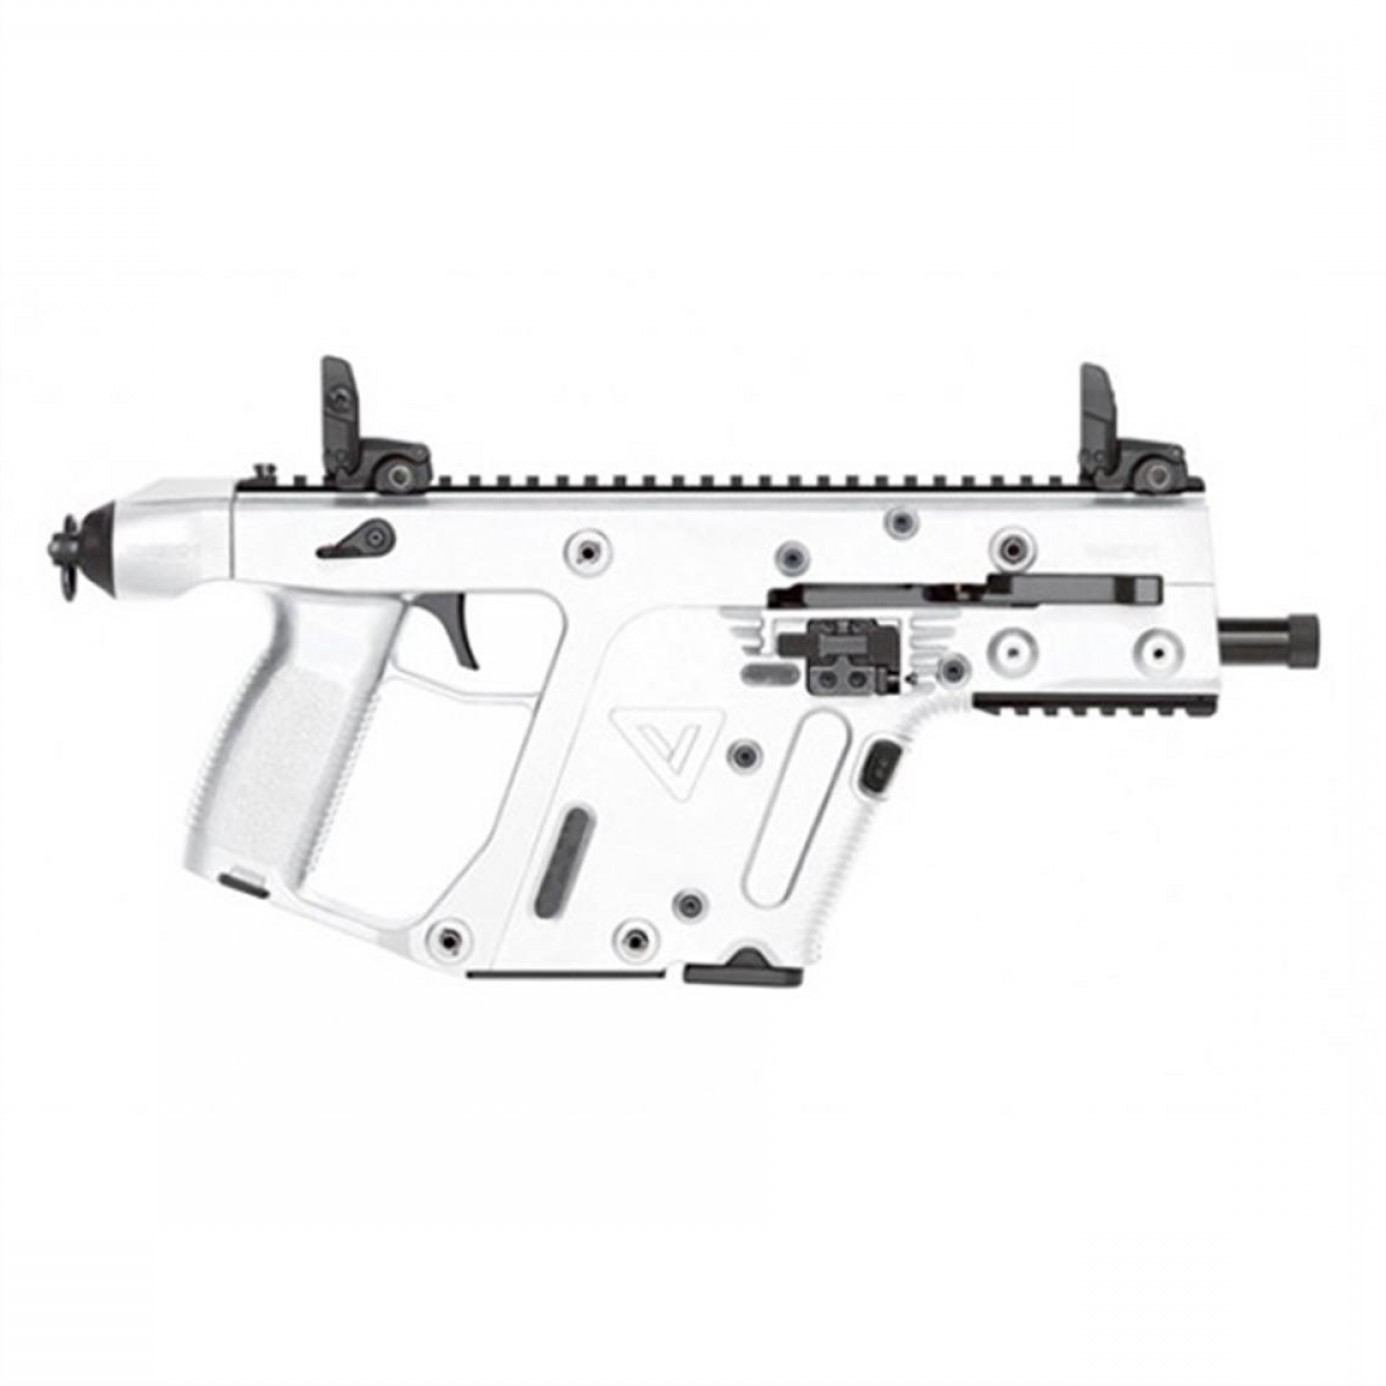 Kriss Vector Rear Grip: Kriss Vector Gen Ii Sdp Alpine Pistol Semi Automatic Mm Barrel Rounds